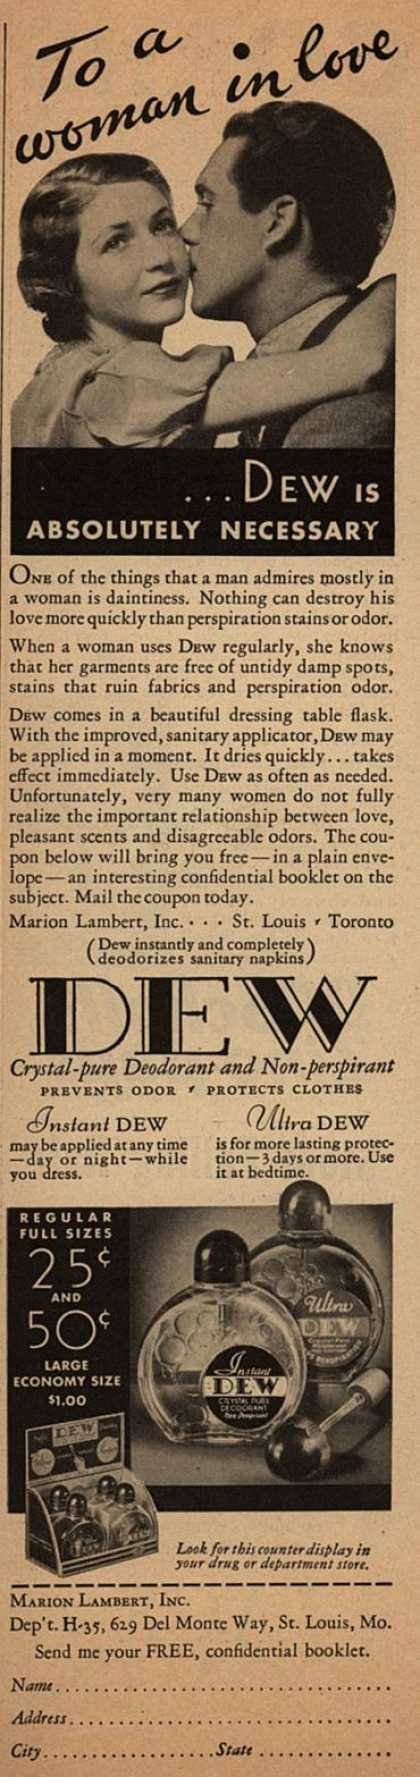 Marion Lambert's Dew Deodorant – To a woman in love ...Dew is absolutely necessary